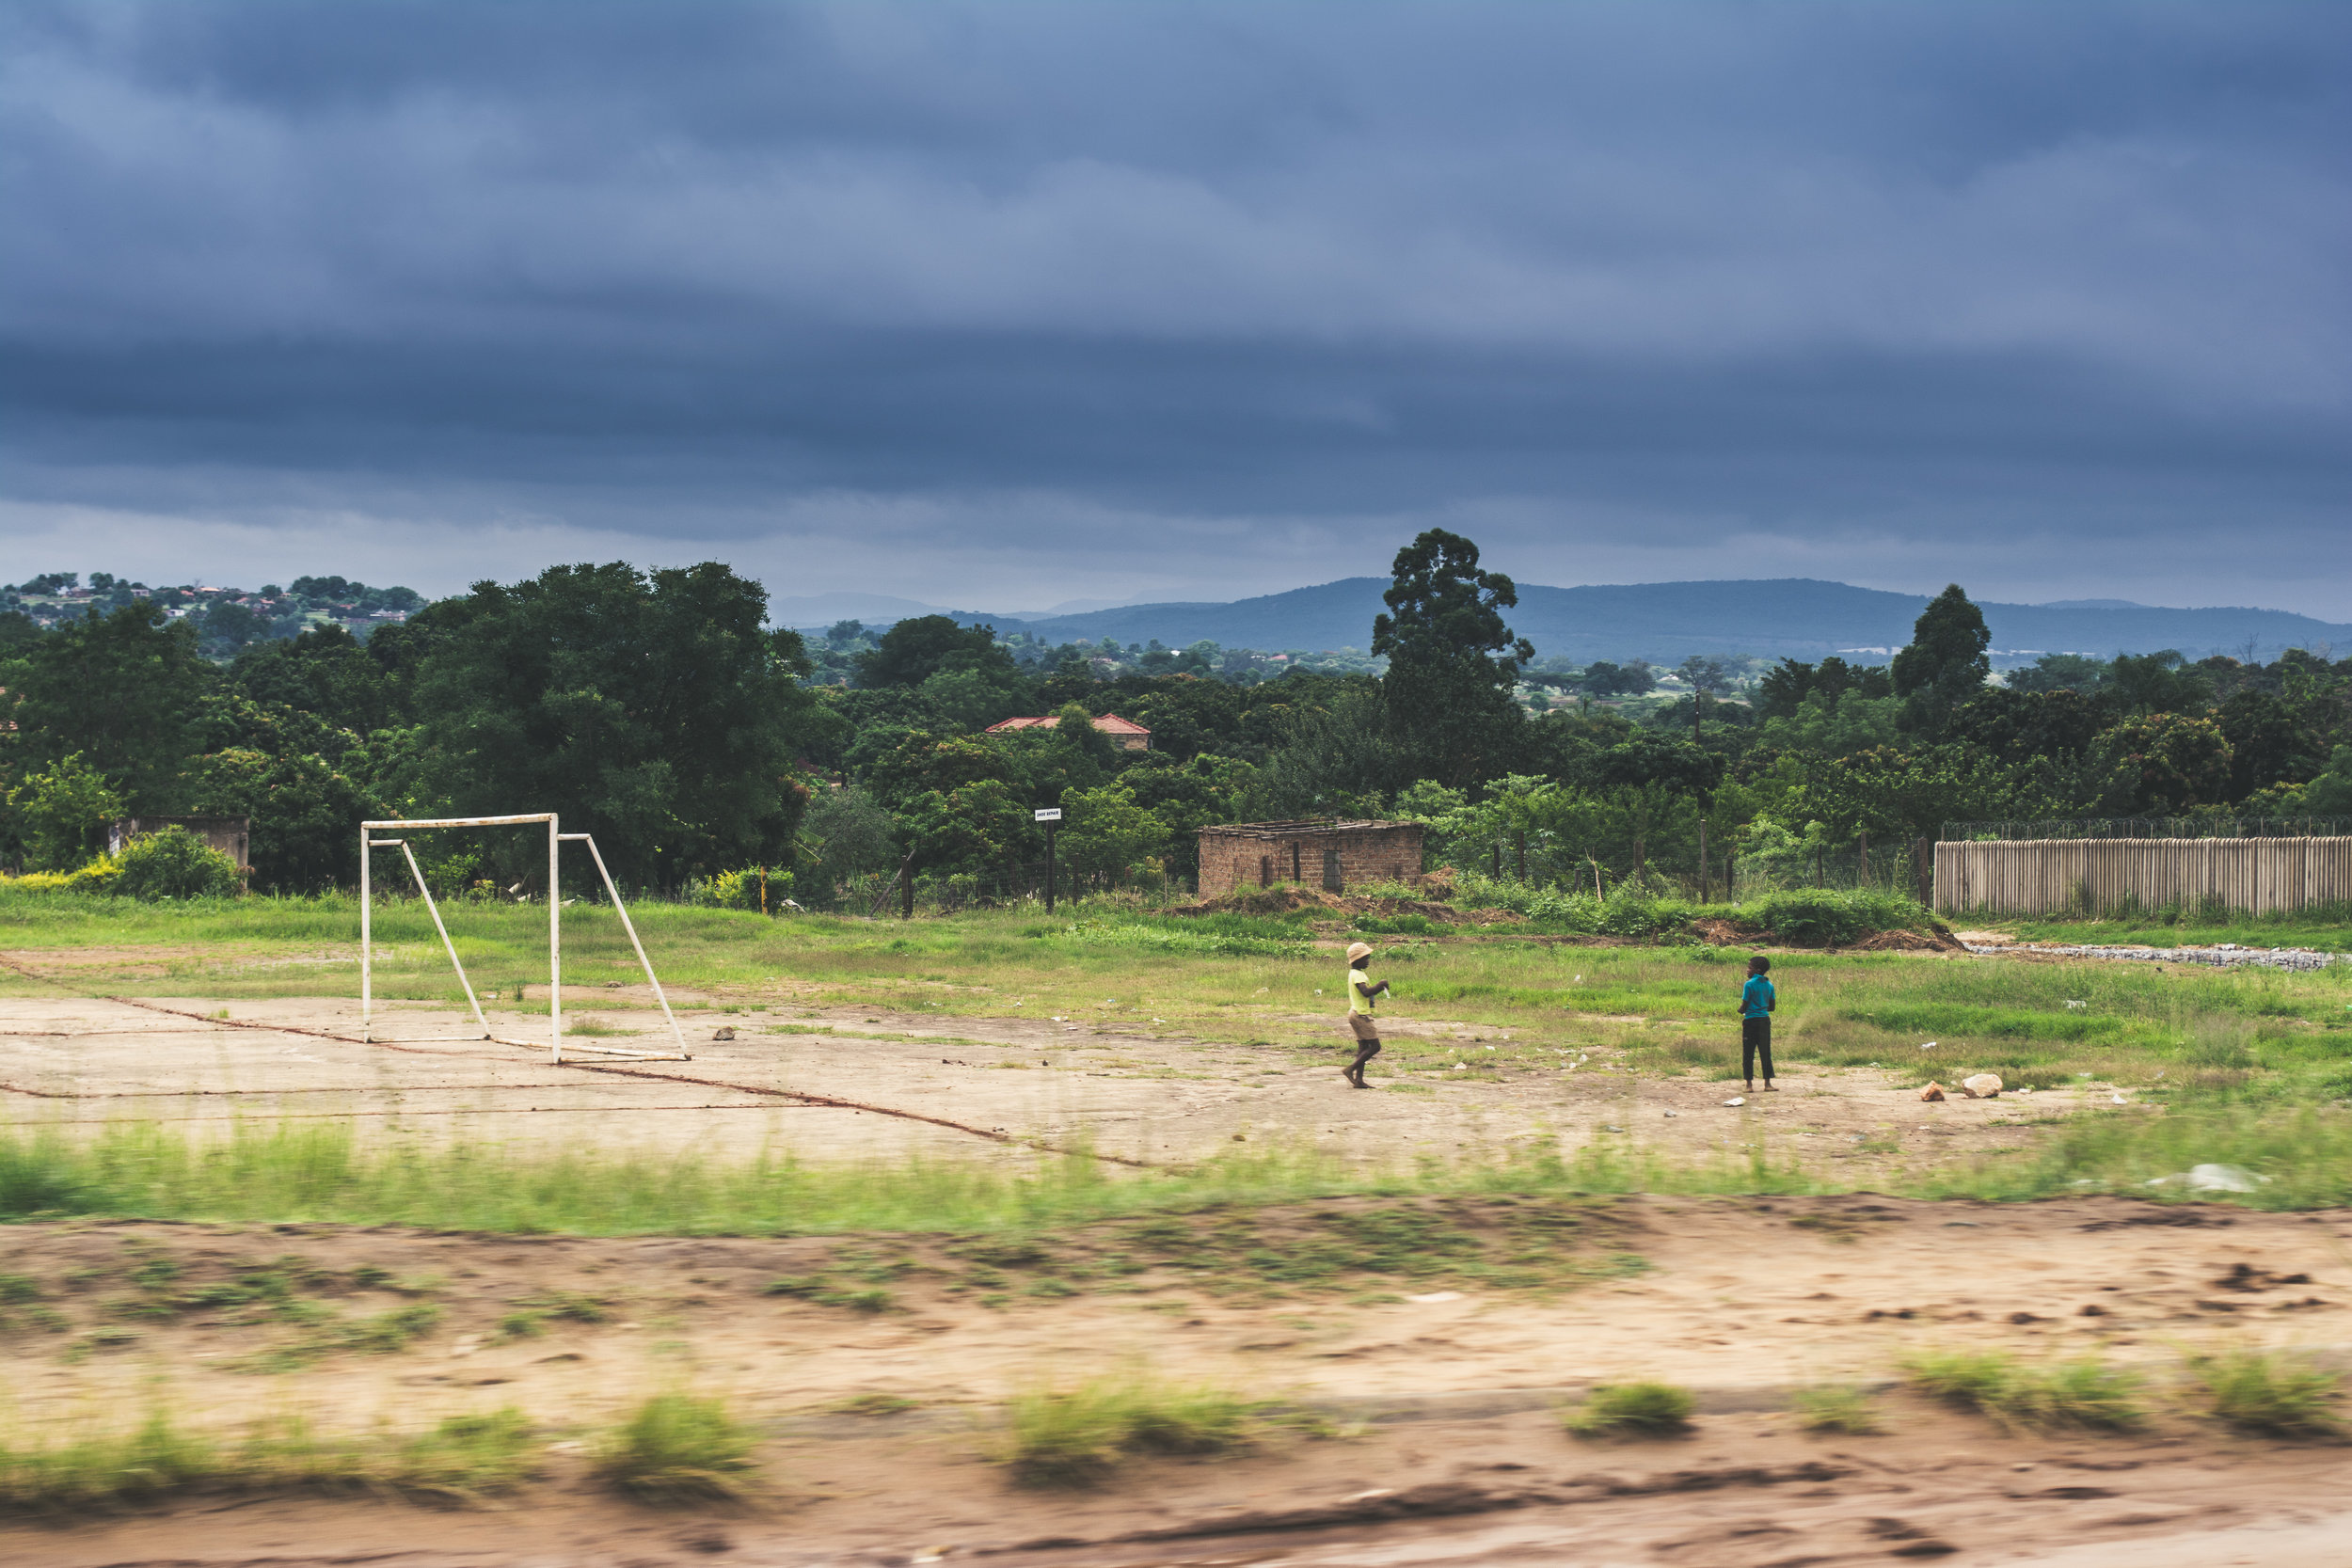 Limpopo children and soccer field